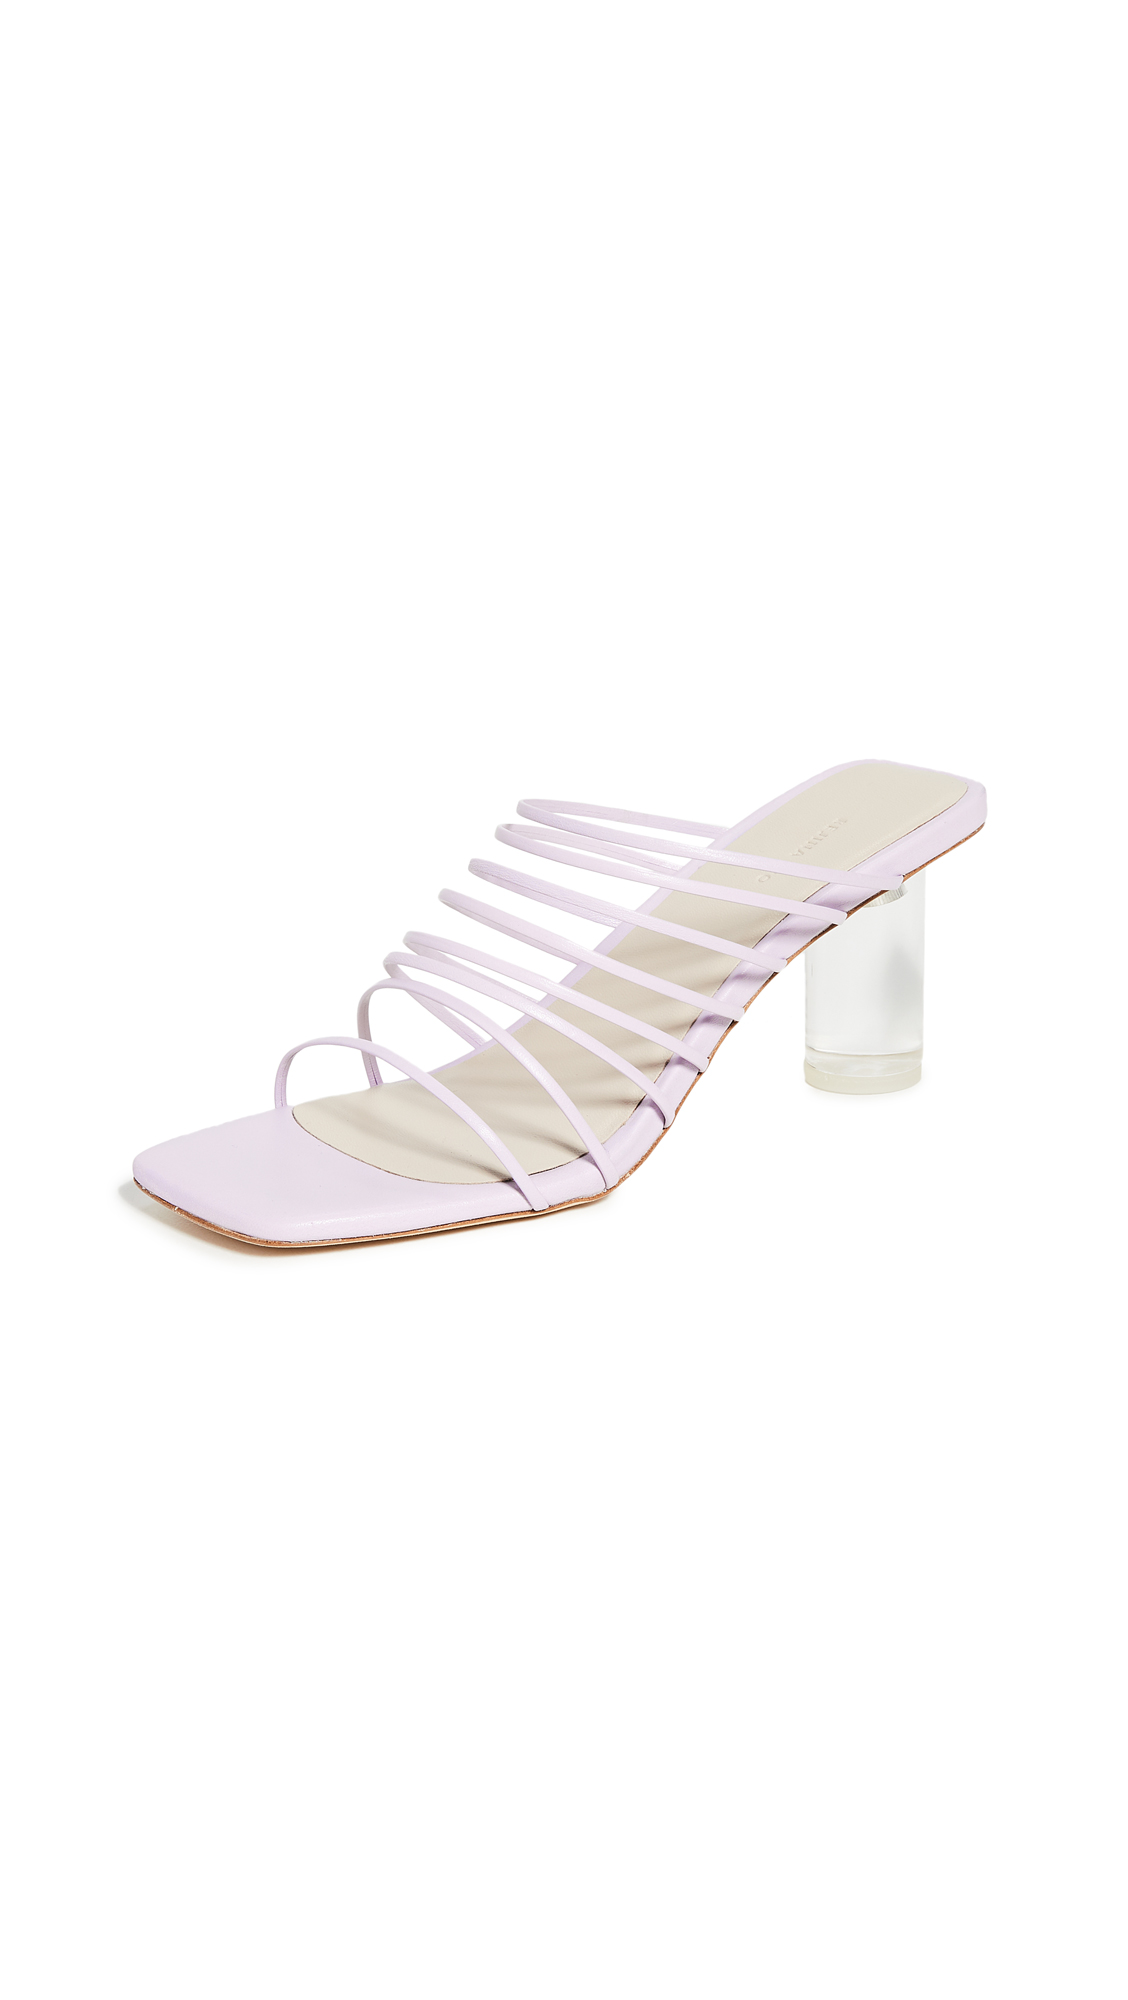 Rejina Pyo Zoe Sandals - 50% Off Sale